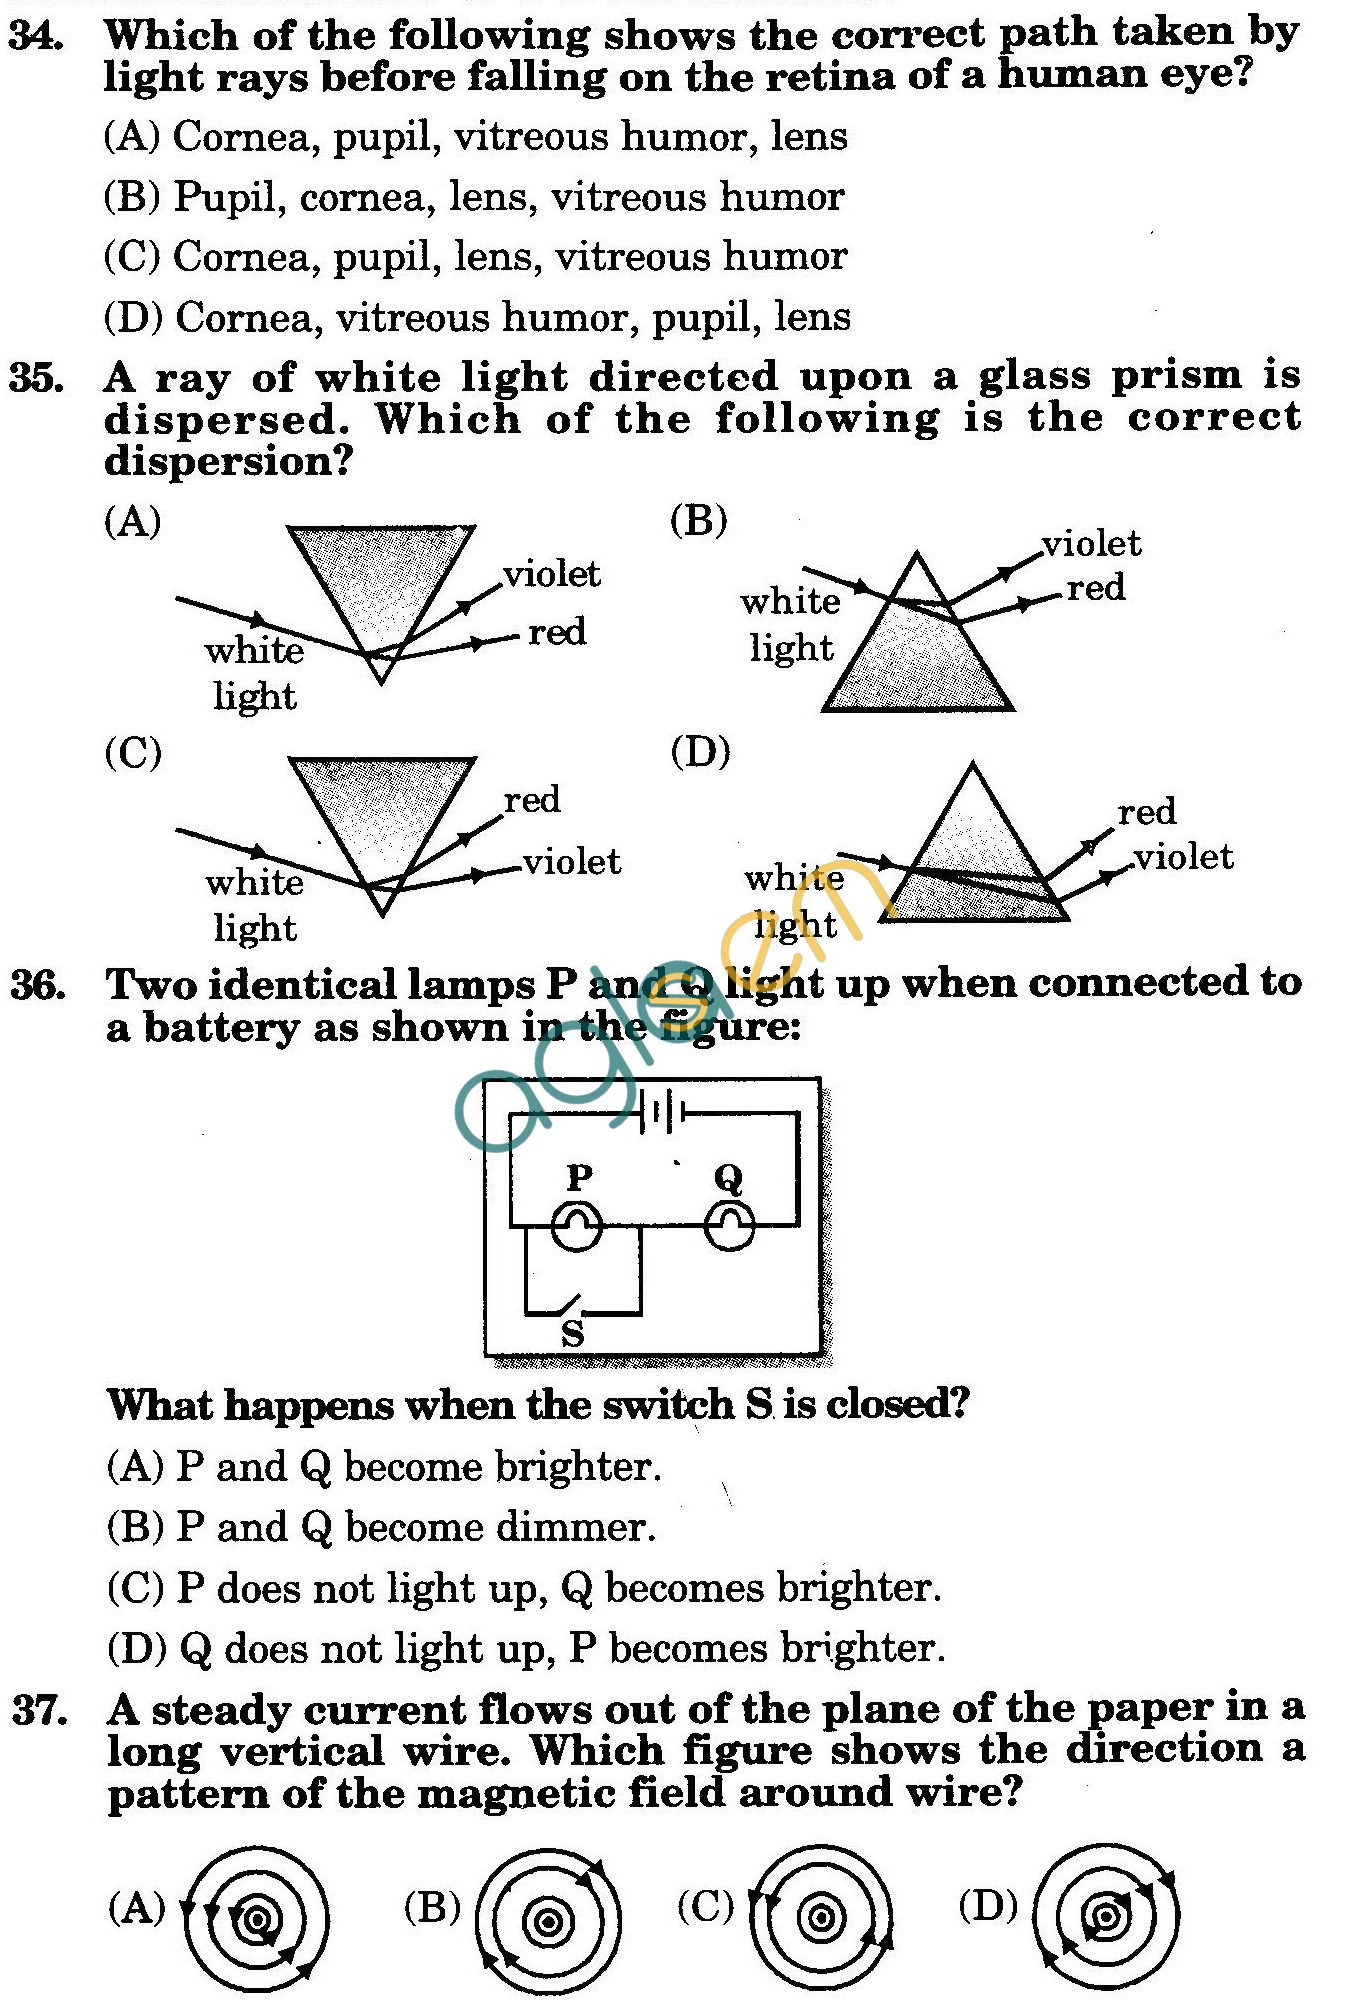 NSTSE 2010: Class X Question Paper with Answers - Physics